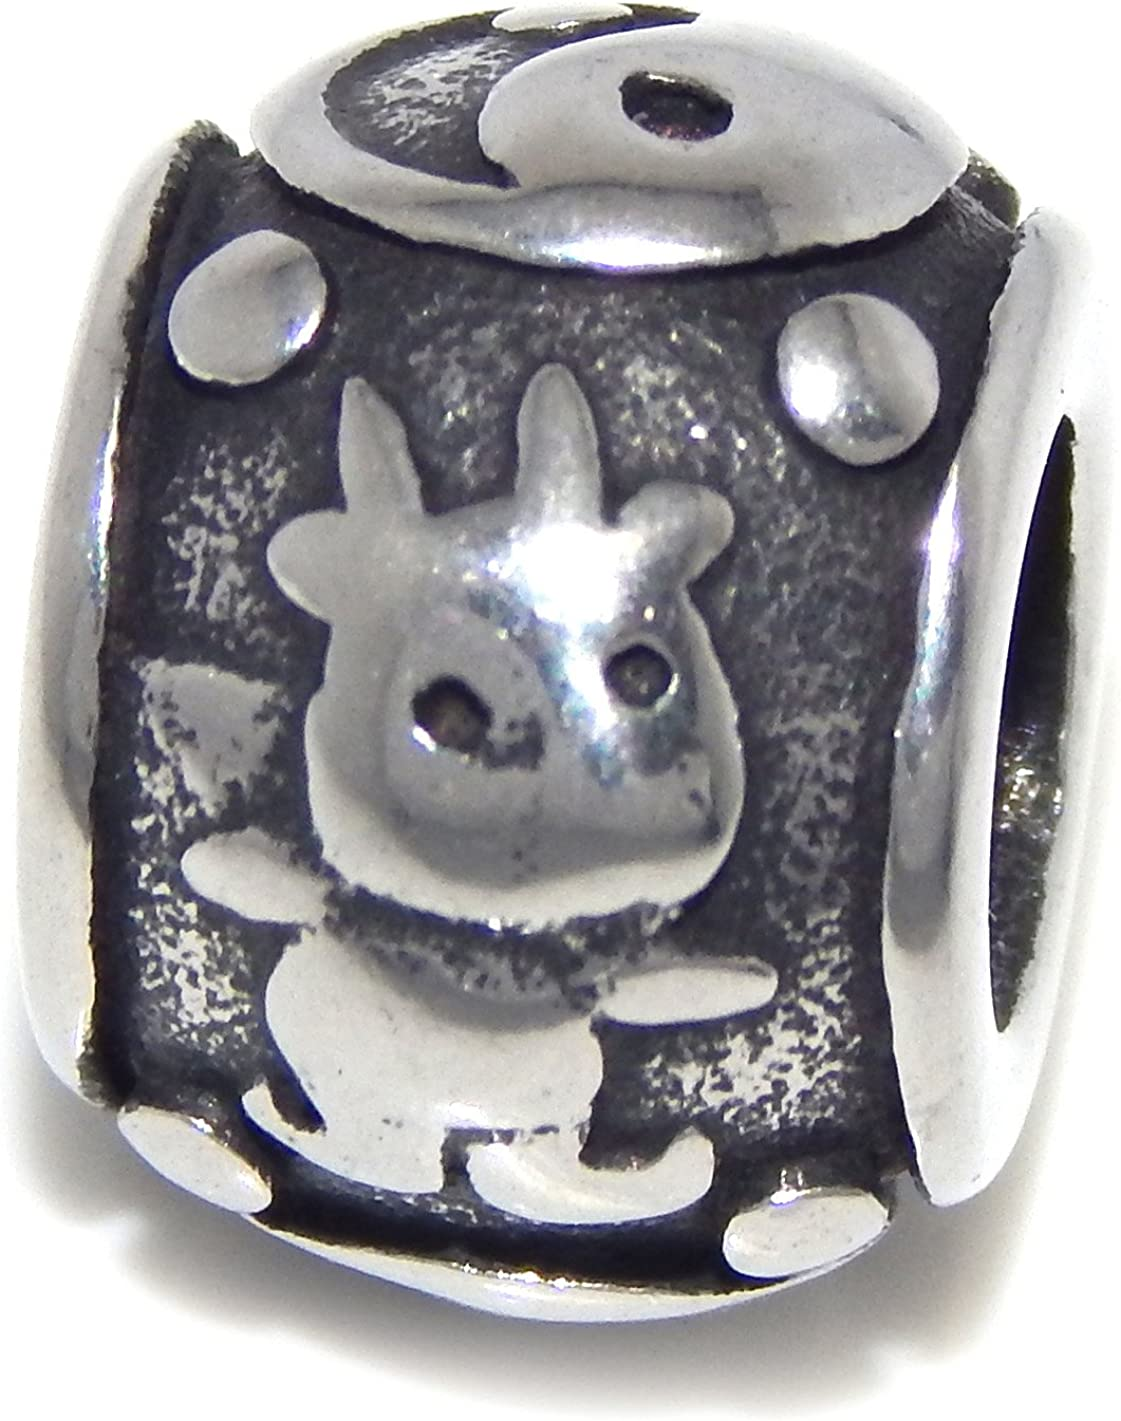 ICYROSE Stainless Steel Chinese Goat Zodiac Sign Spacer Charm Bead for European Snake Chain Bracelets